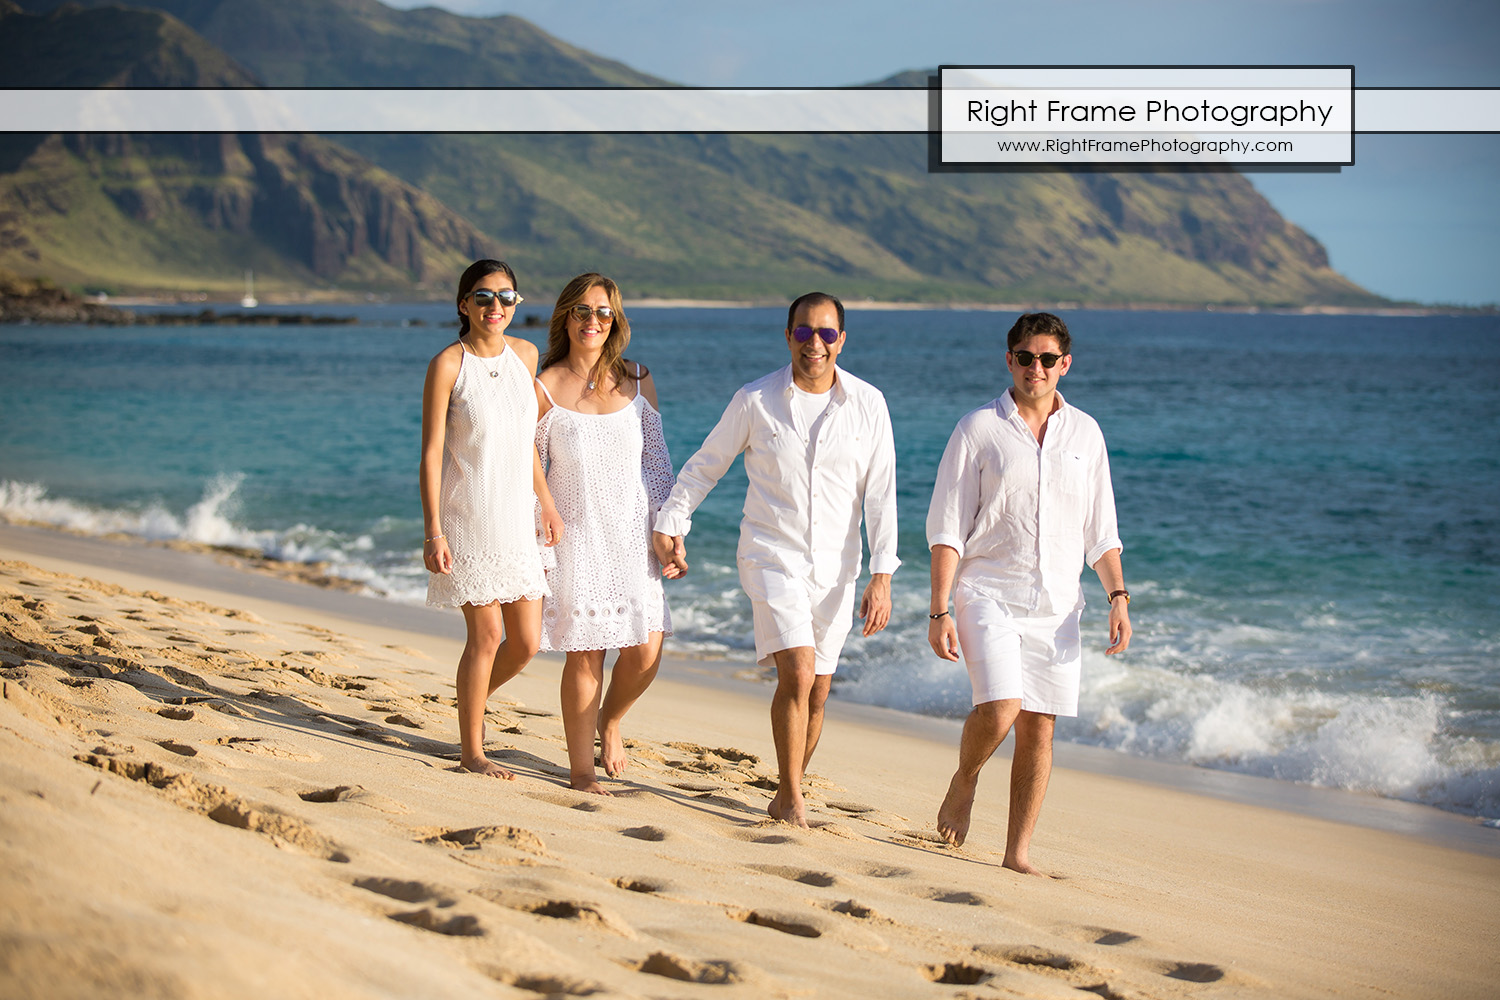 Professional Family Portrait in Hawaii Oahu